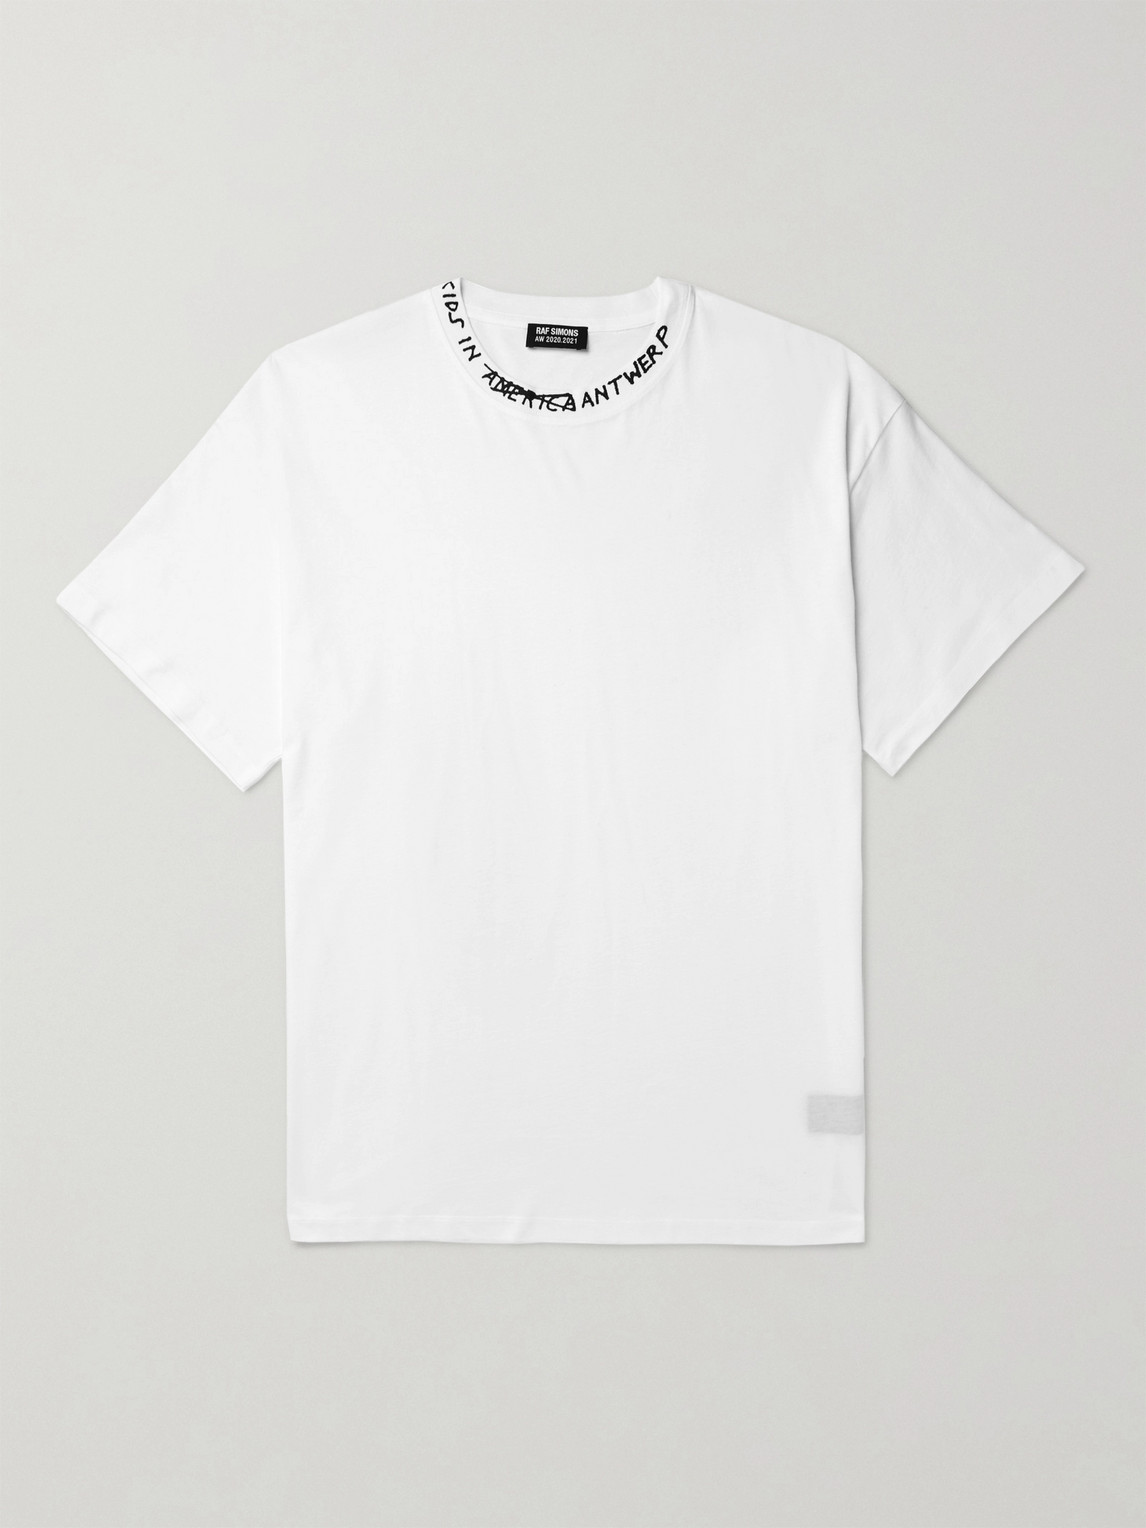 Raf Simons Oversized Printed Cotton-jersey T-shirt In White